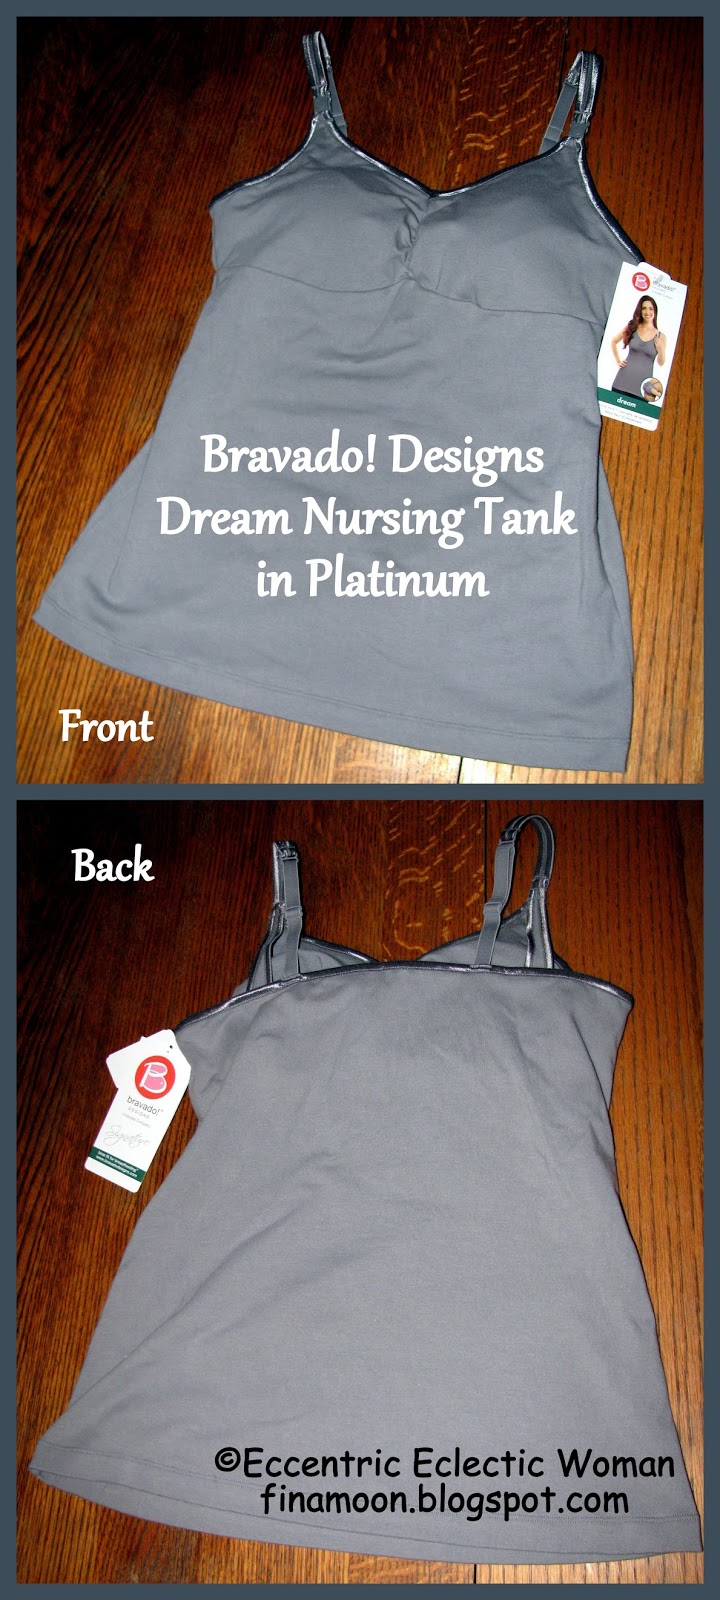 27db702244 Eccentric Eclectic Woman  Bravado Designs and Baby Buggy Team Up For ...